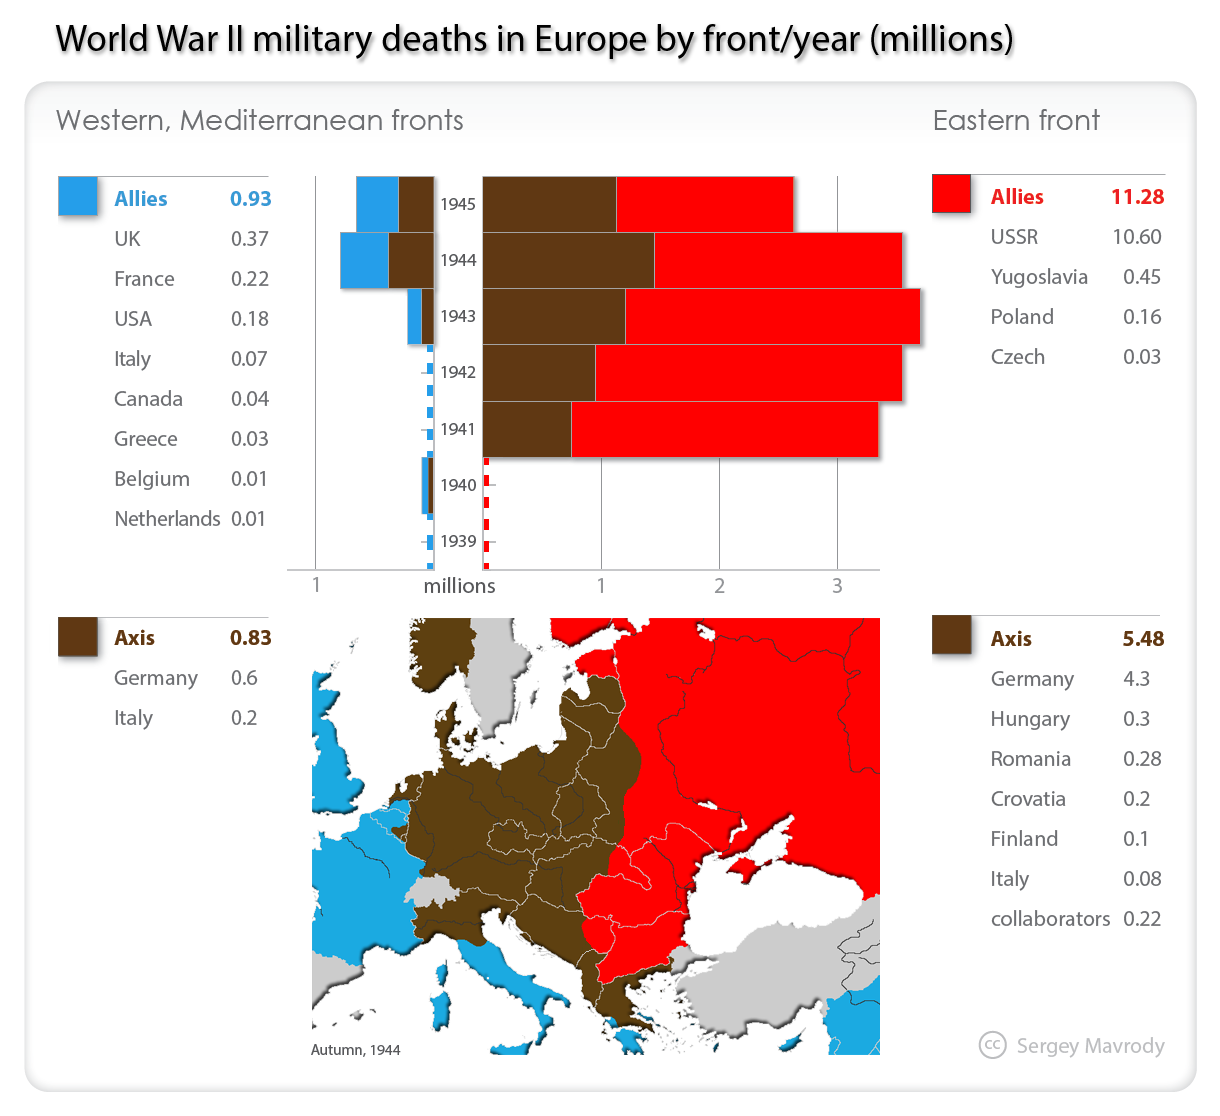 World-War-II-military-deaths-in-Europe-by-theater-year.png